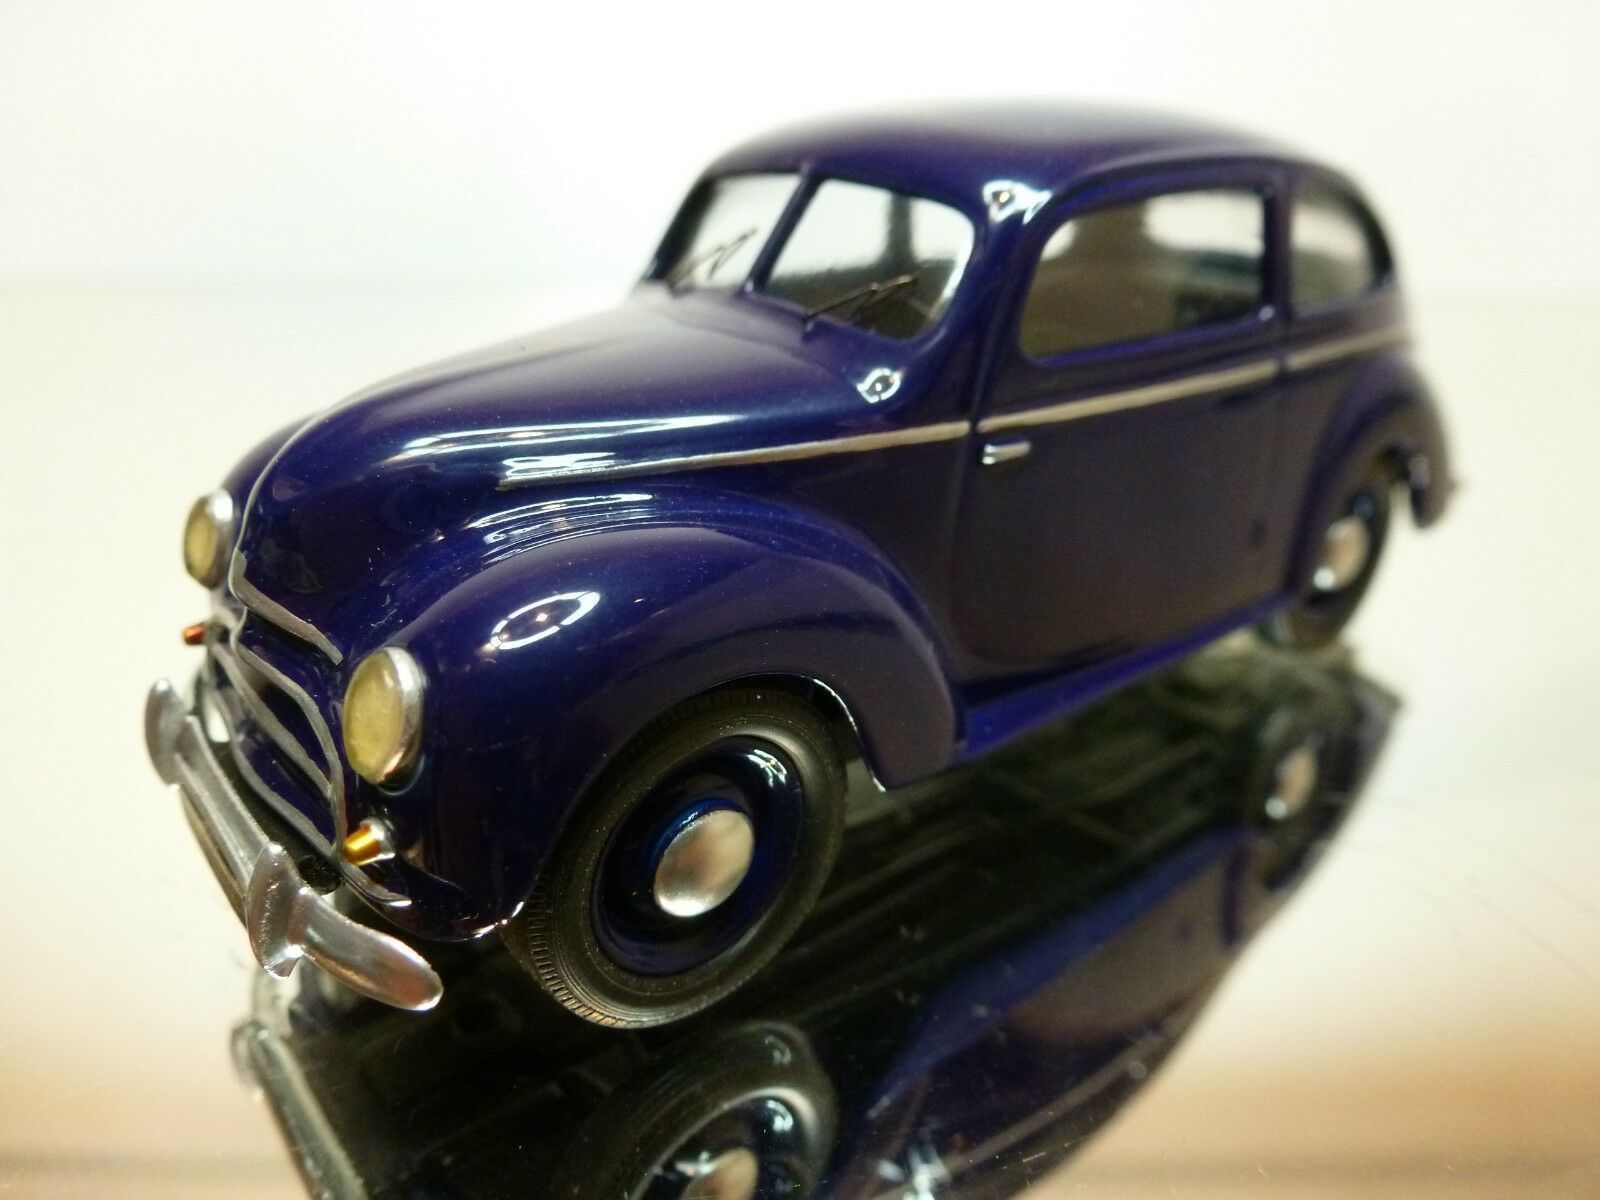 HAND MADE FORD TAUNUS DE LUXE 1951 - bleu violet 1 43 - EXCELLENT CONDITION - 17